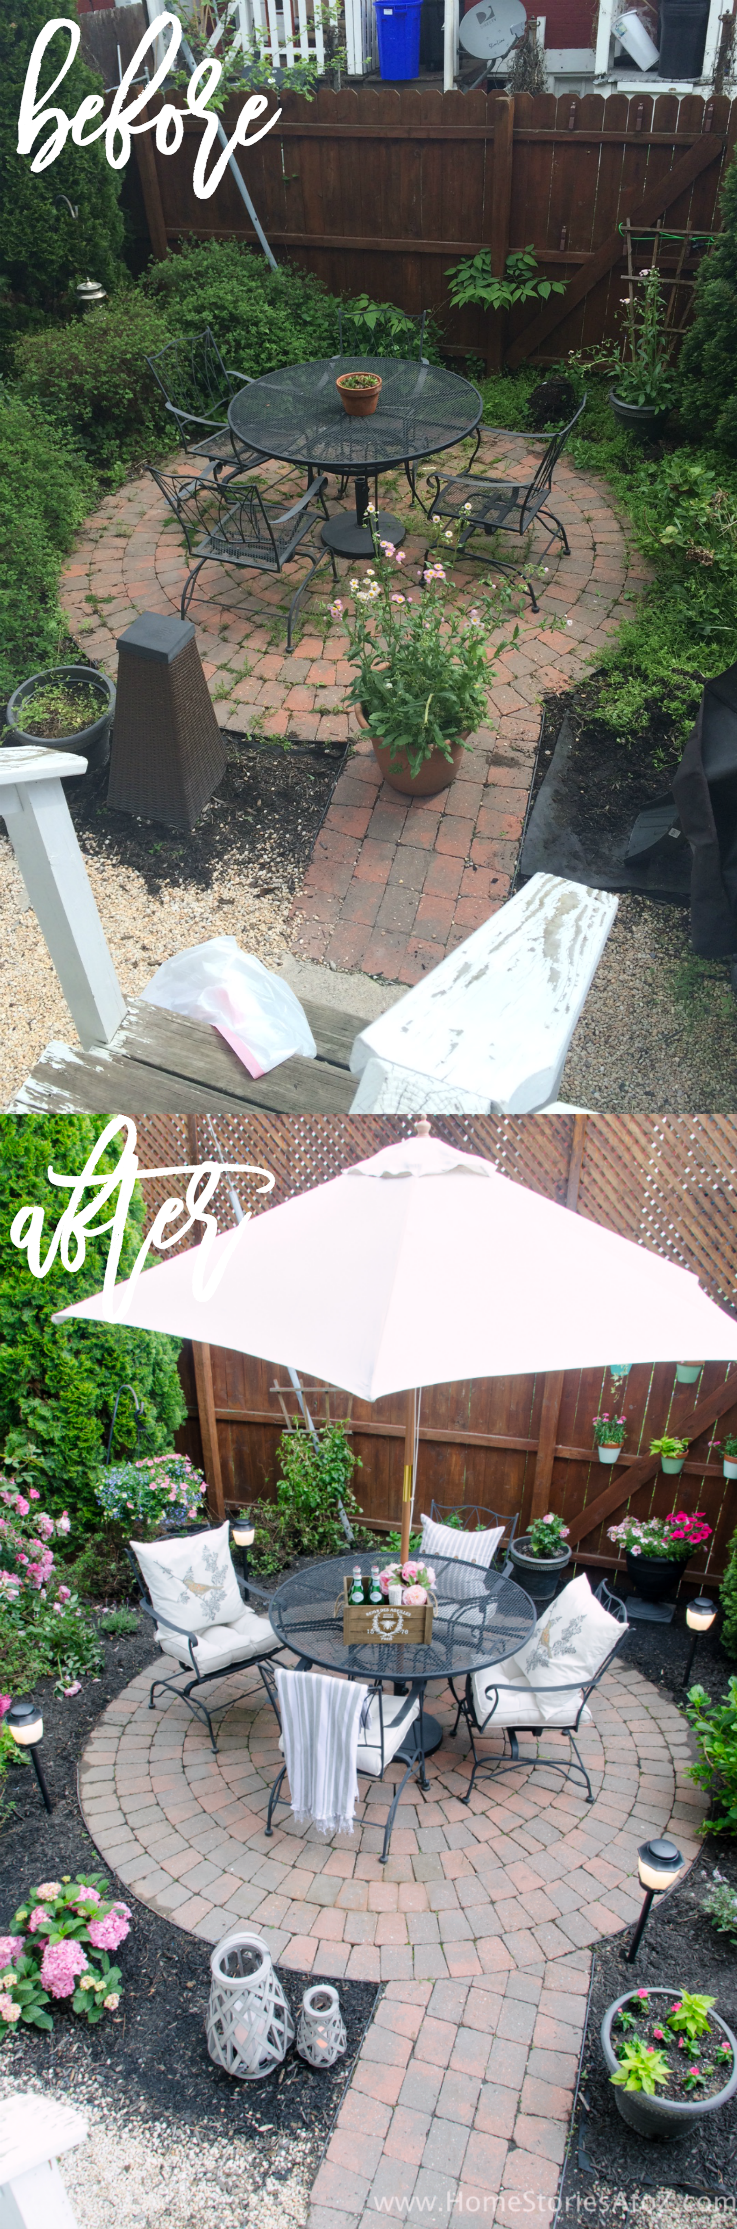 Urban Backyard Makeover with Outdoor Mosquito Repellent ... on Outdoor Patio Makeover id=44345